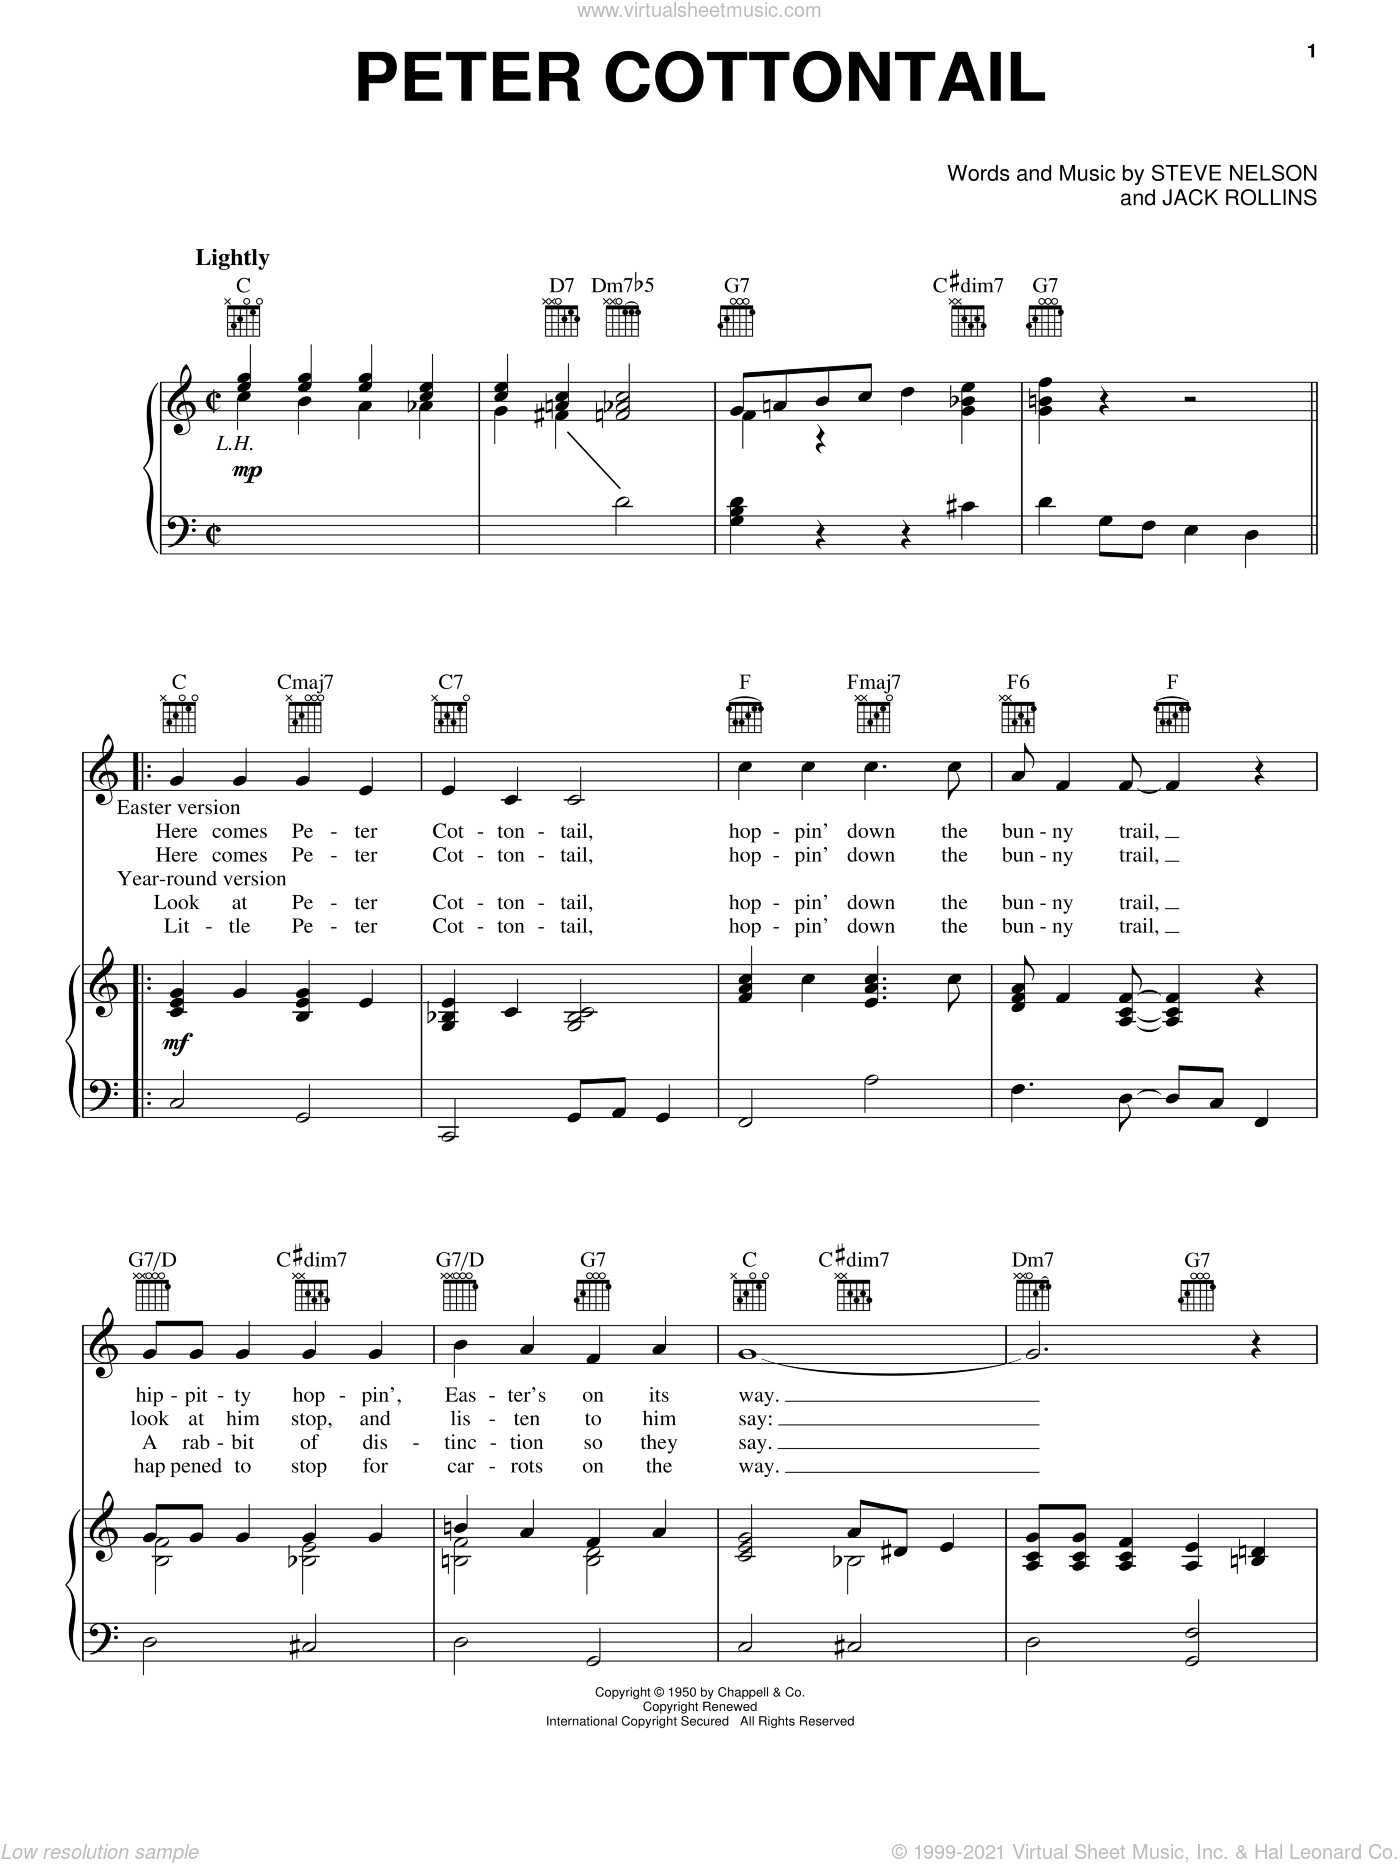 Peter Cottontail sheet music for voice, piano or guitar by Steve Nelson and Jack Rollins. Score Image Preview.